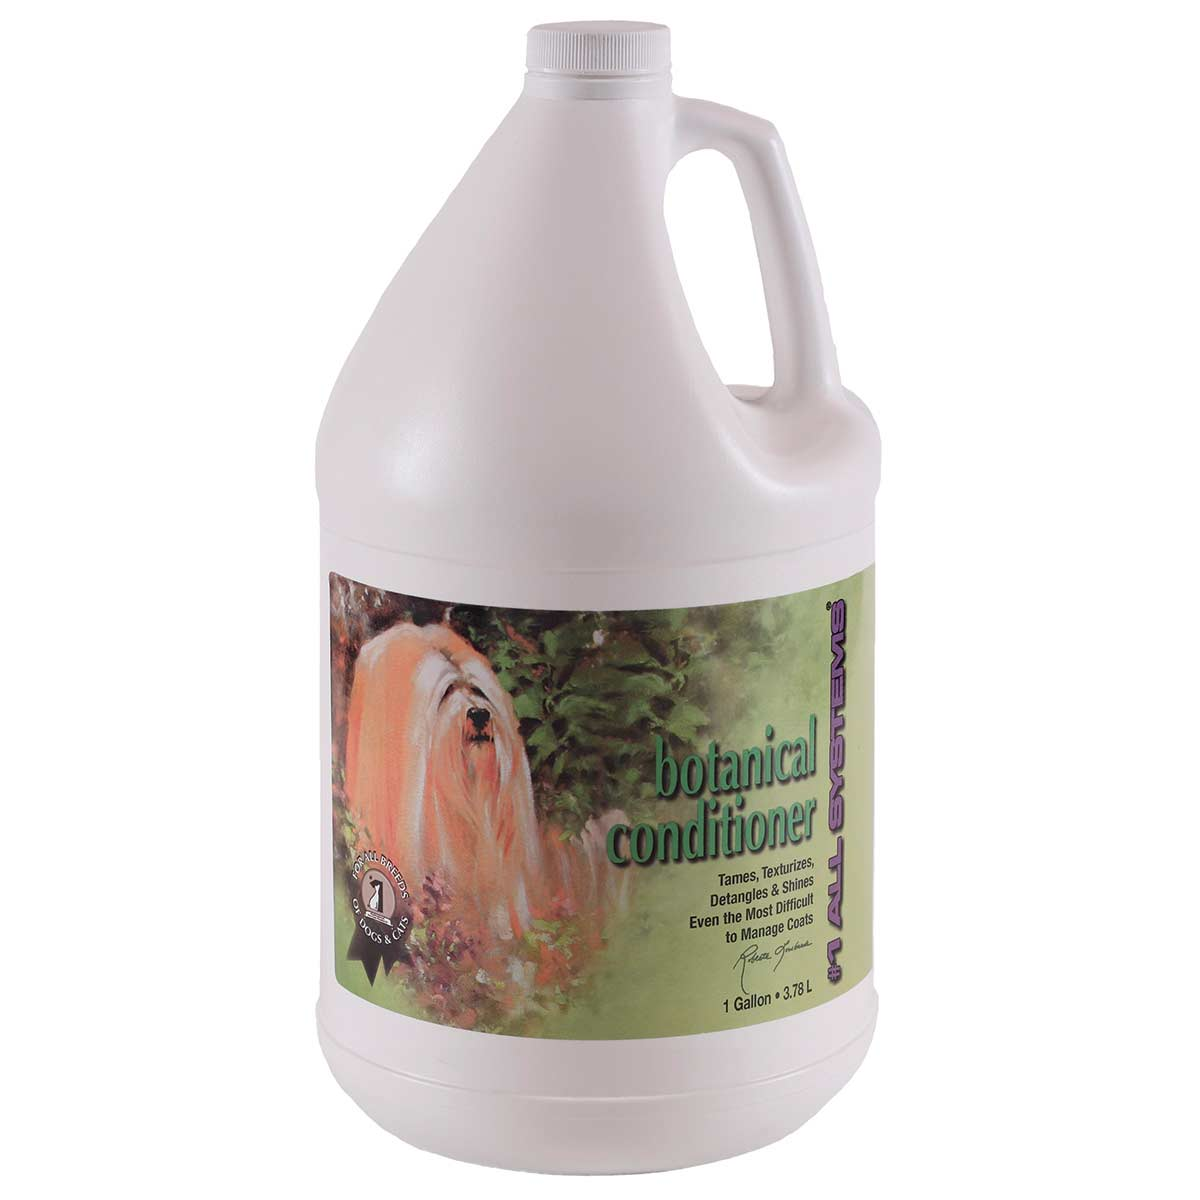 Gallon #1 All Systems Botanical Conditioner for Dogs 40:1